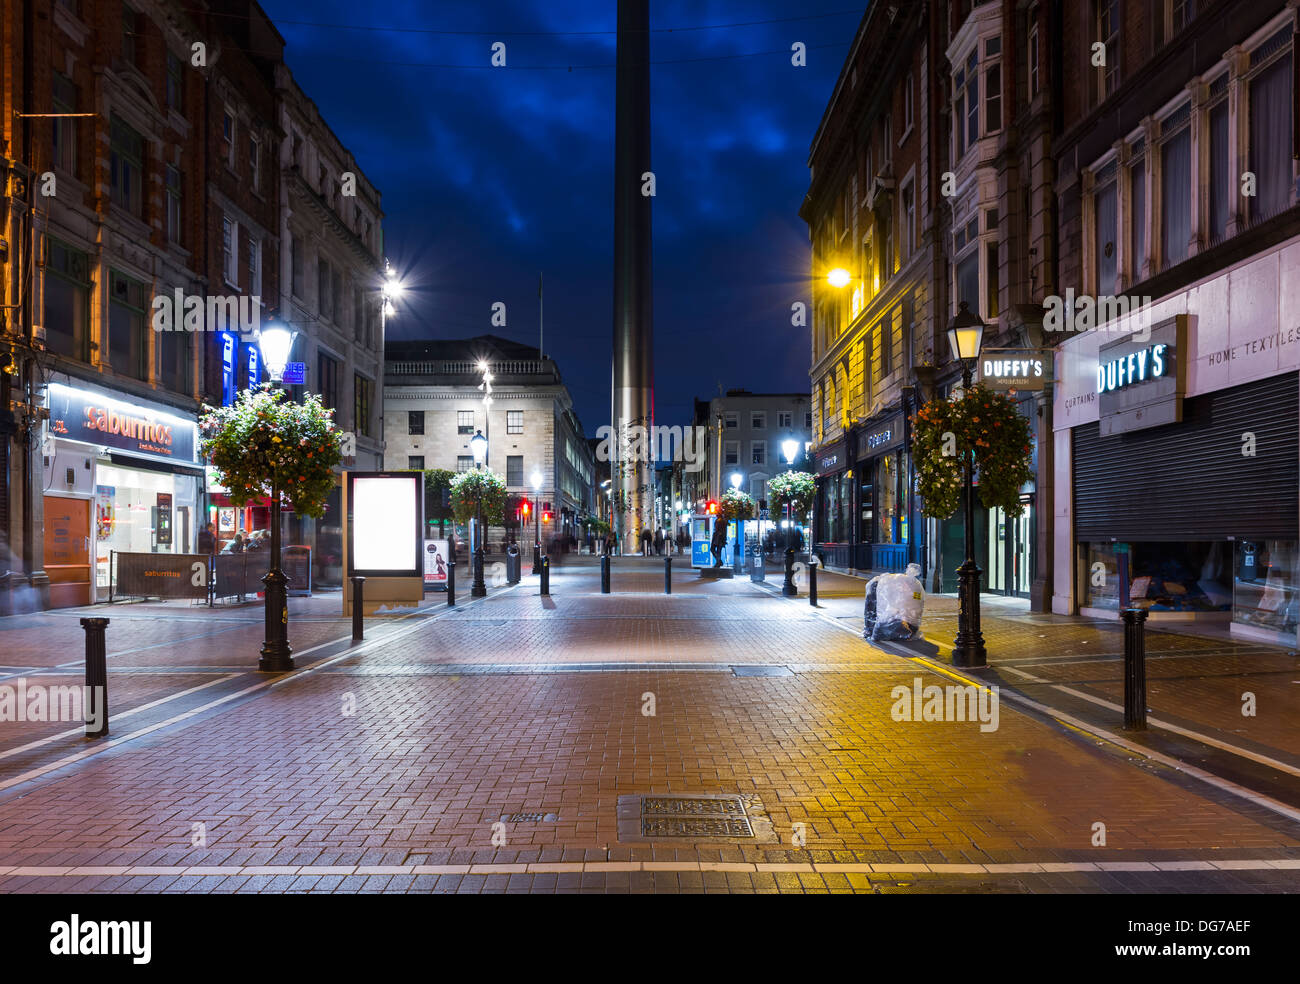 Talbot Street in Dublin city centre with the Spire monument in the background - Stock Image